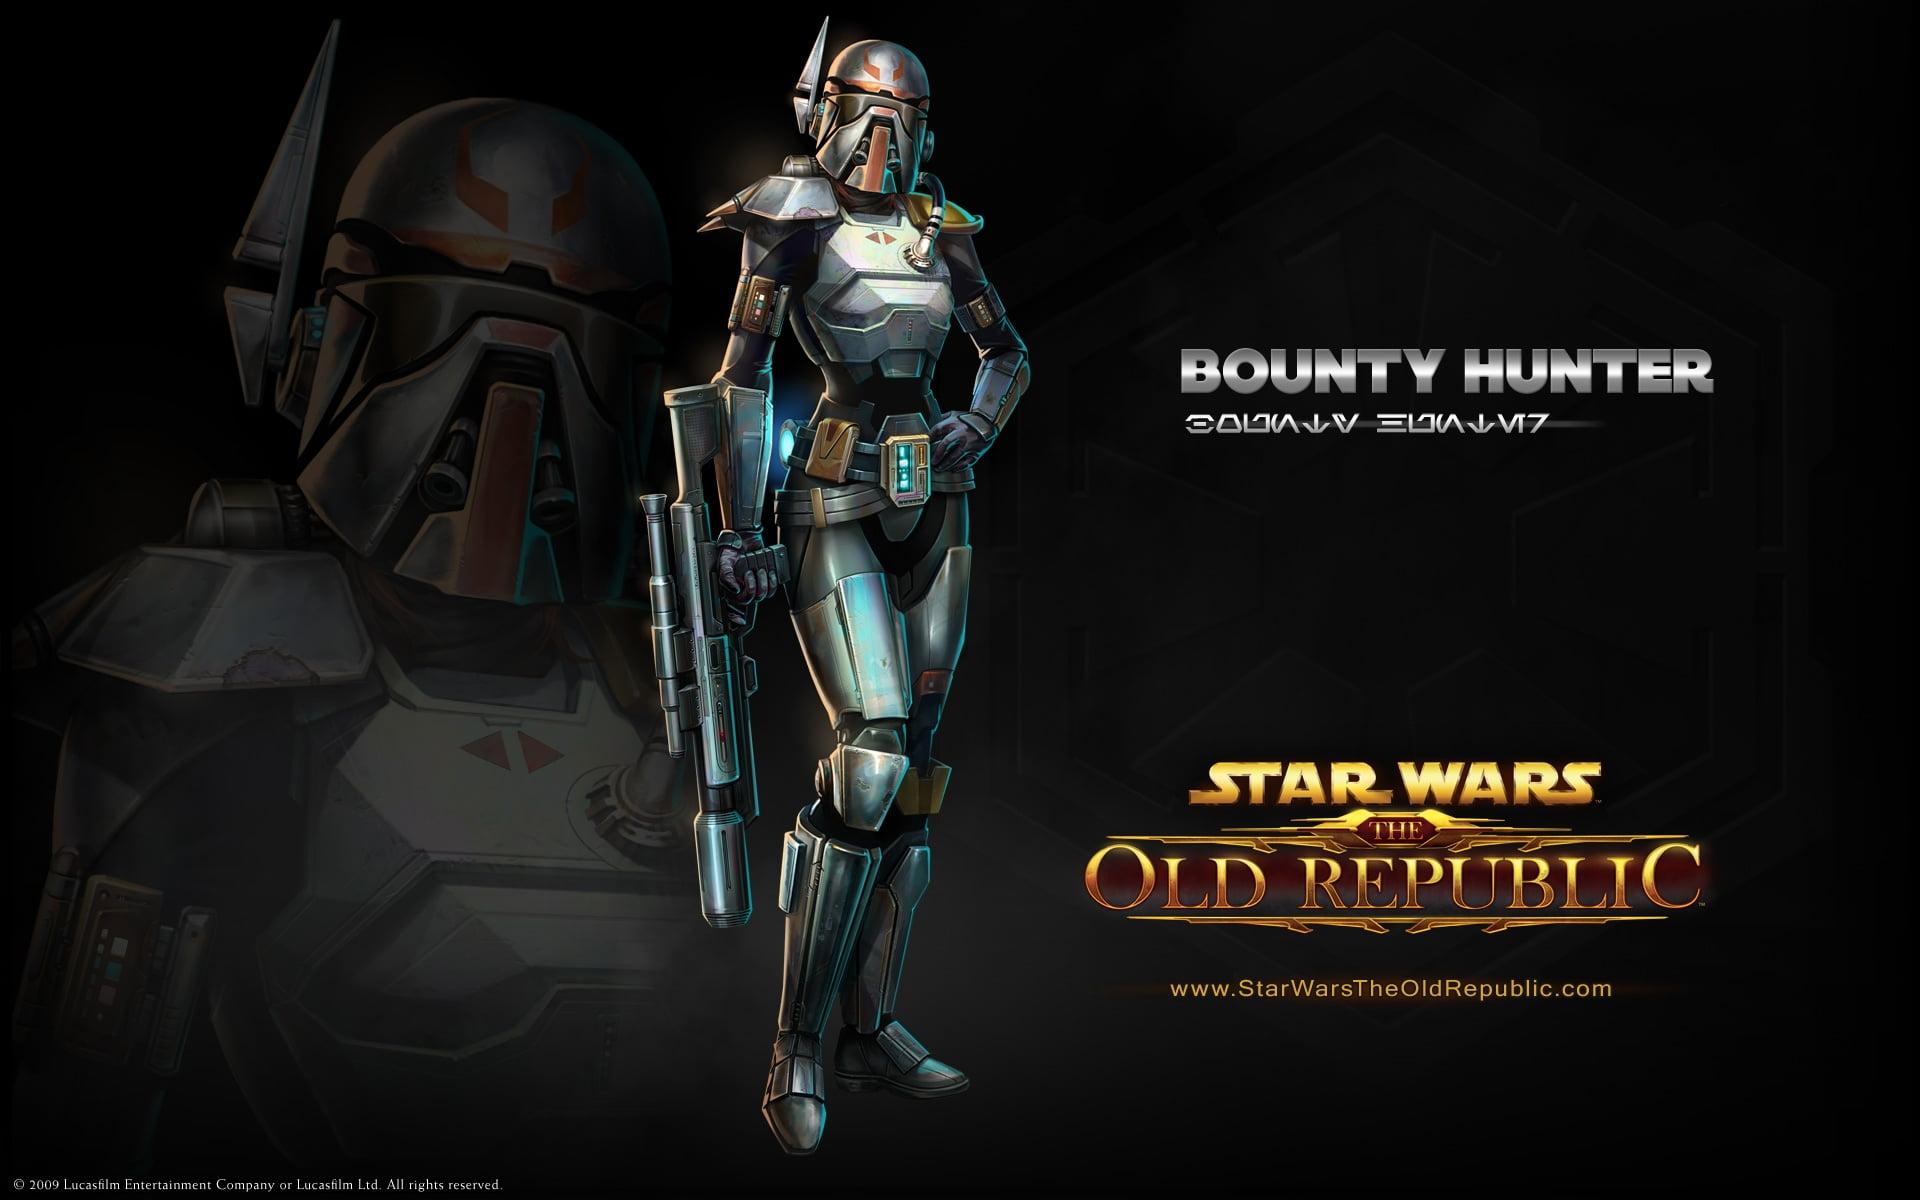 Bounty Hunter Star Wars Old Republic digital wallpaper HD